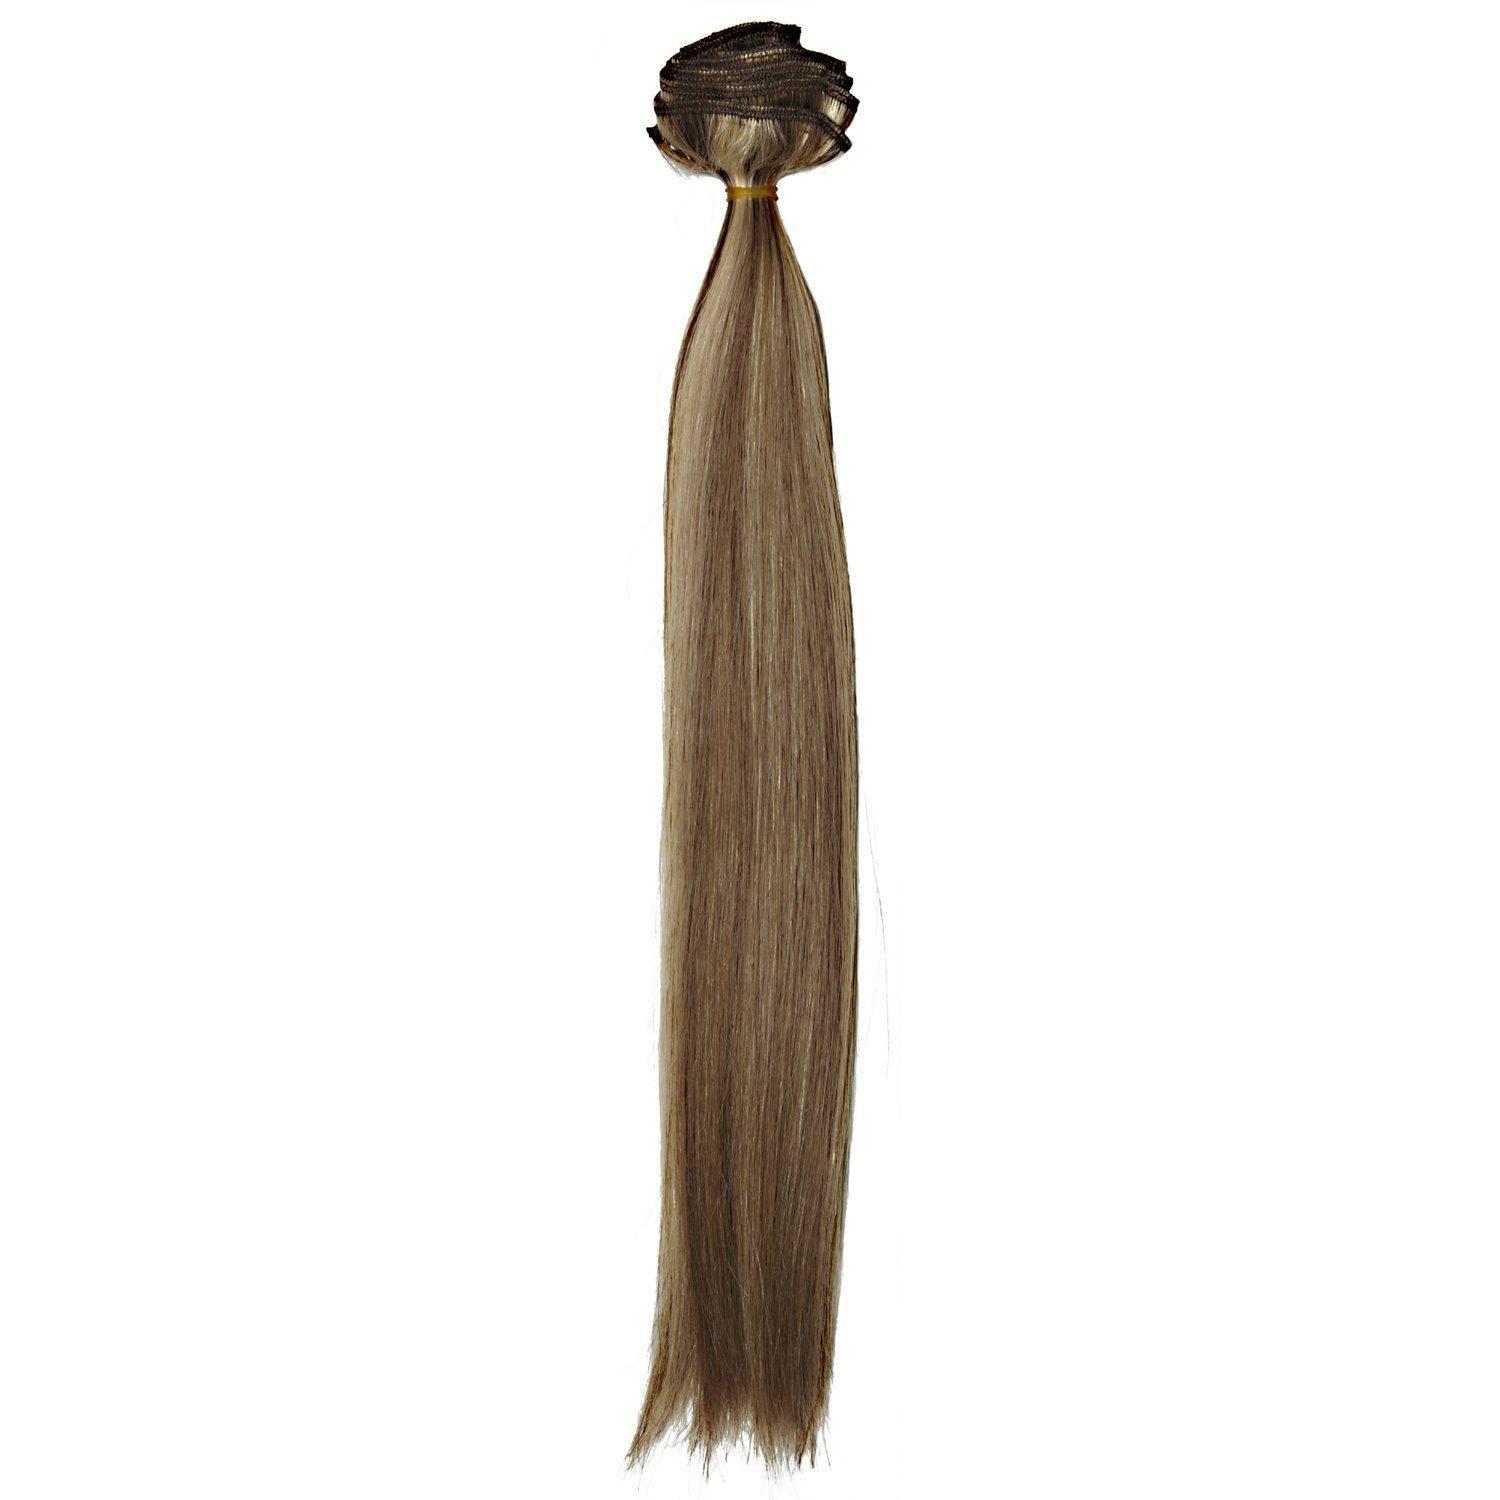 Euronext Dark Blonde Frost Clip In Hair Extensions, 14 Inch